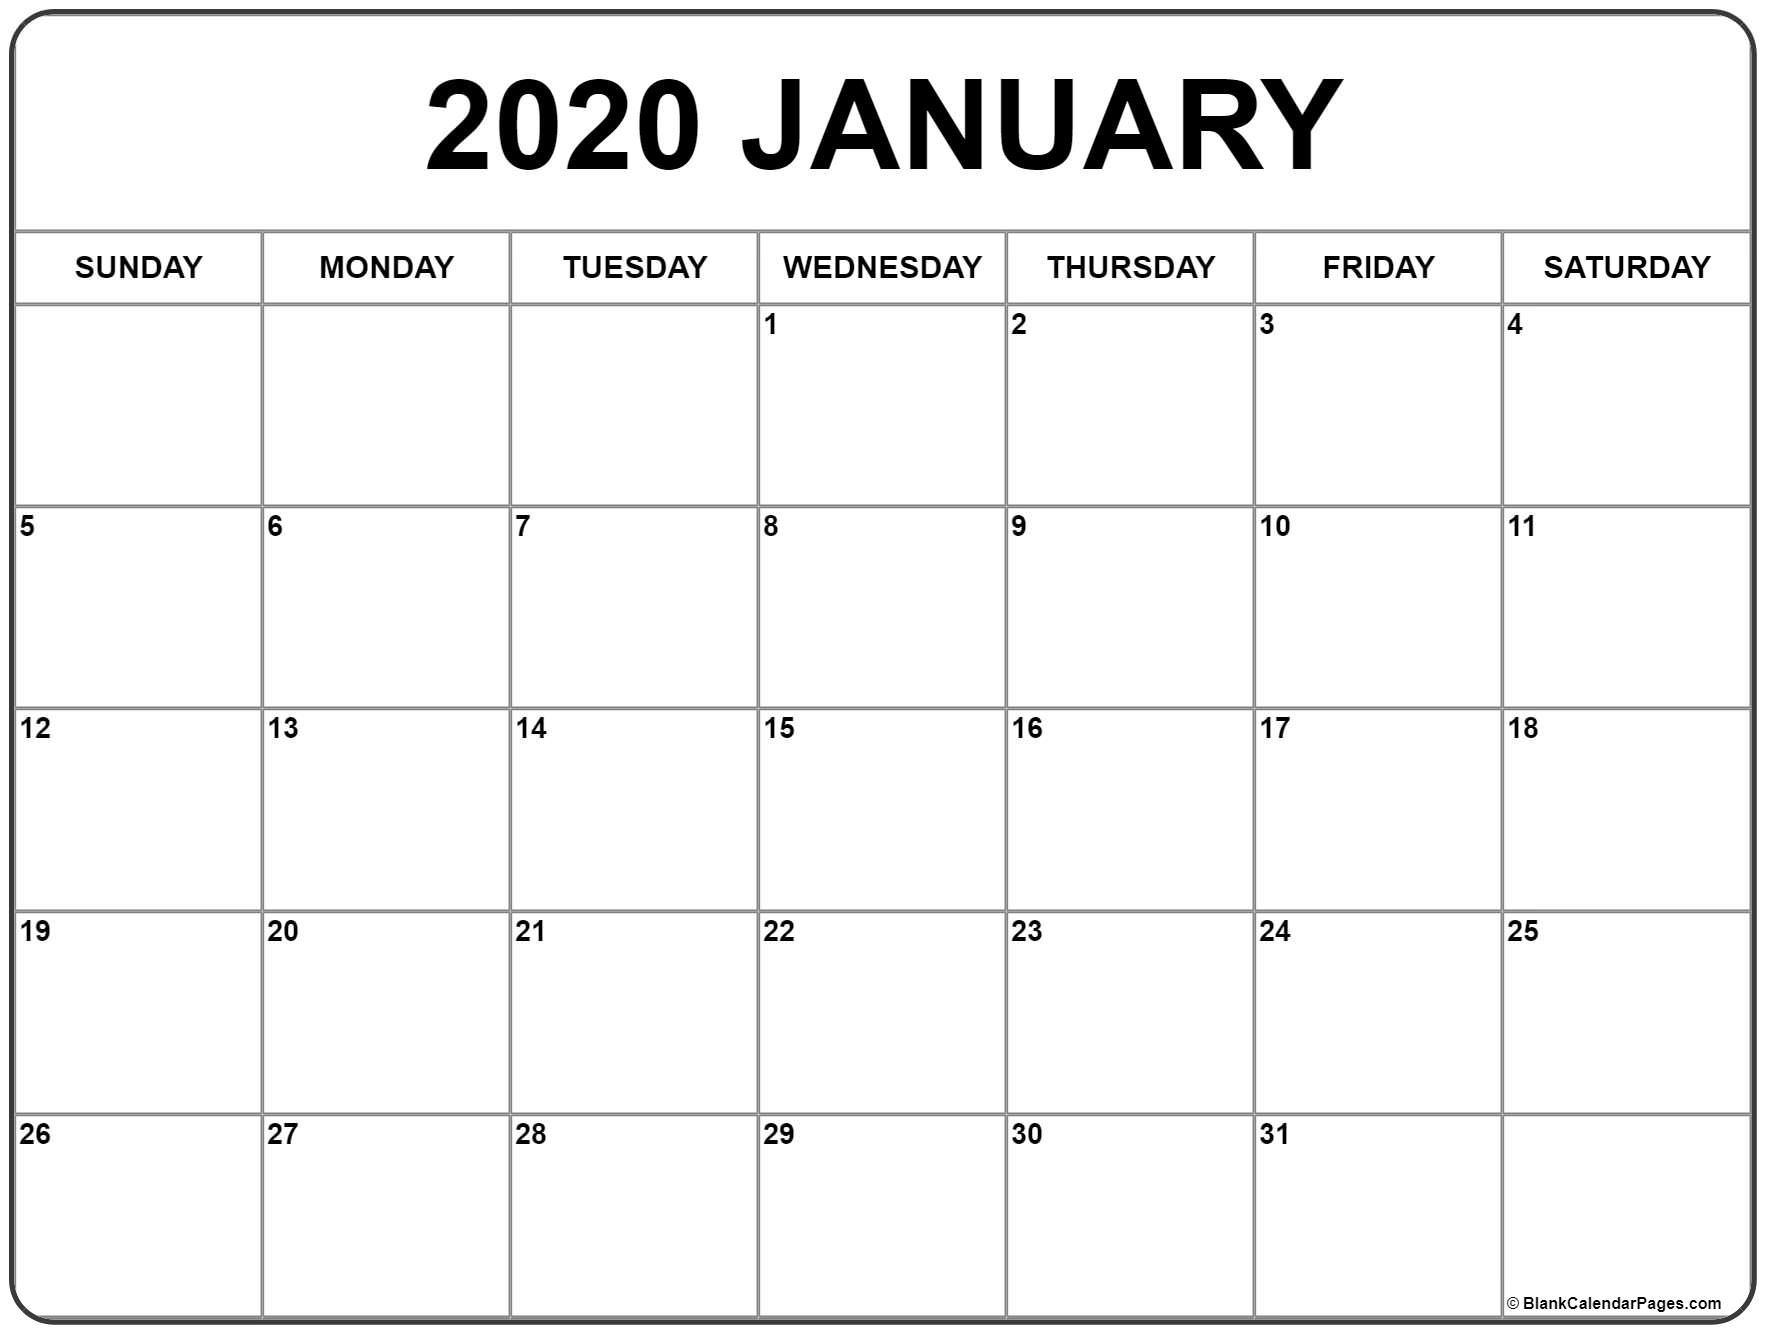 January 2020 Calendar | Free Printable Monthly Calendars inside Printable Calendar 2020 Monthly Free